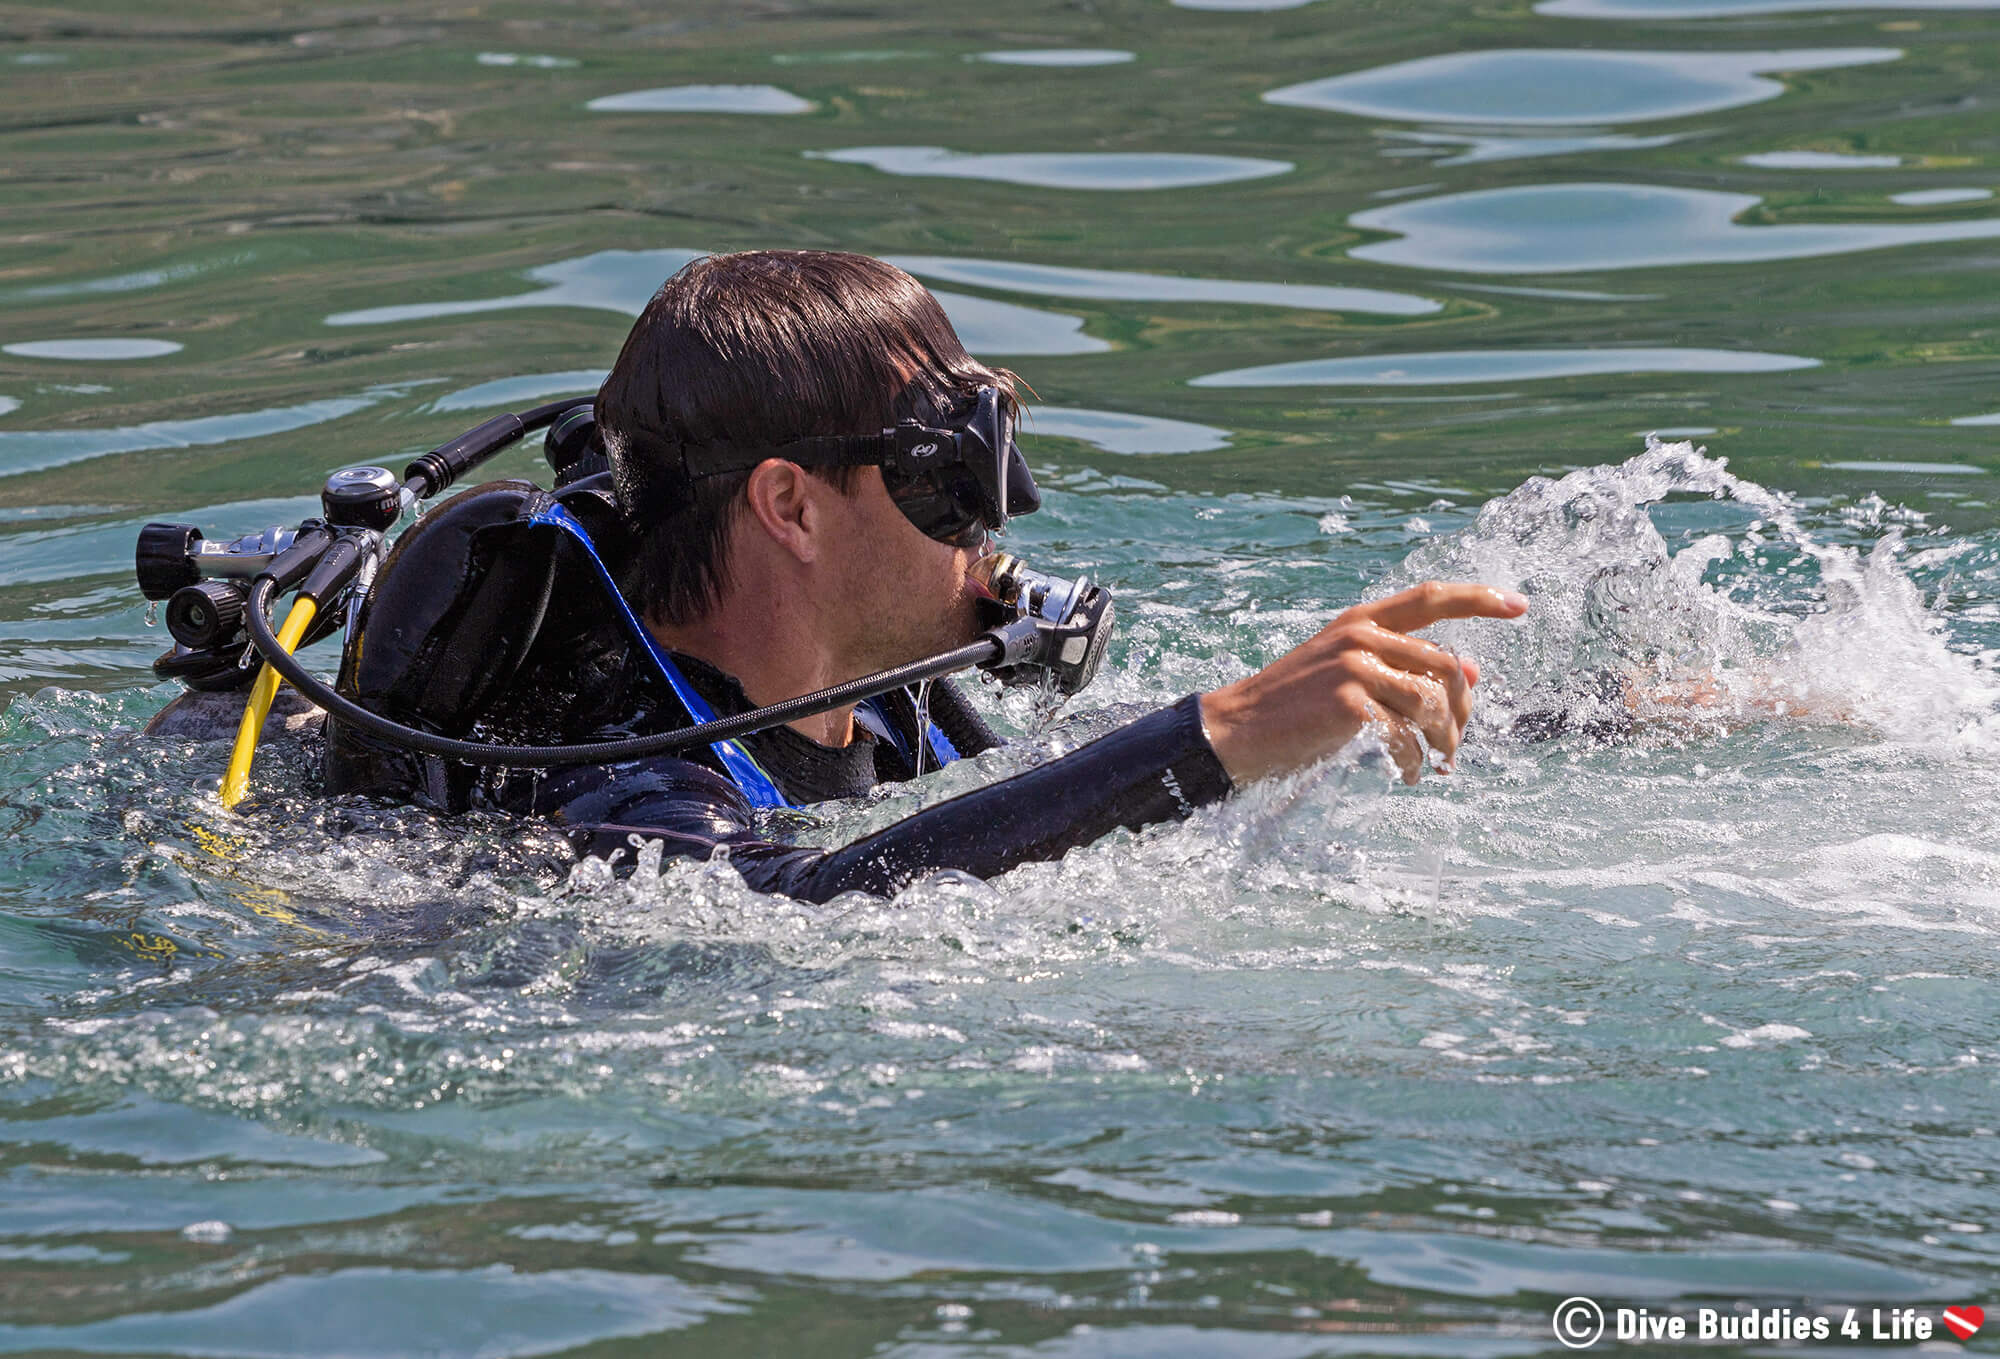 Joey Struggling To Stay At The Surface Of The Water In His Scuba Diving Equipment During The PADI Rescue Diver Course